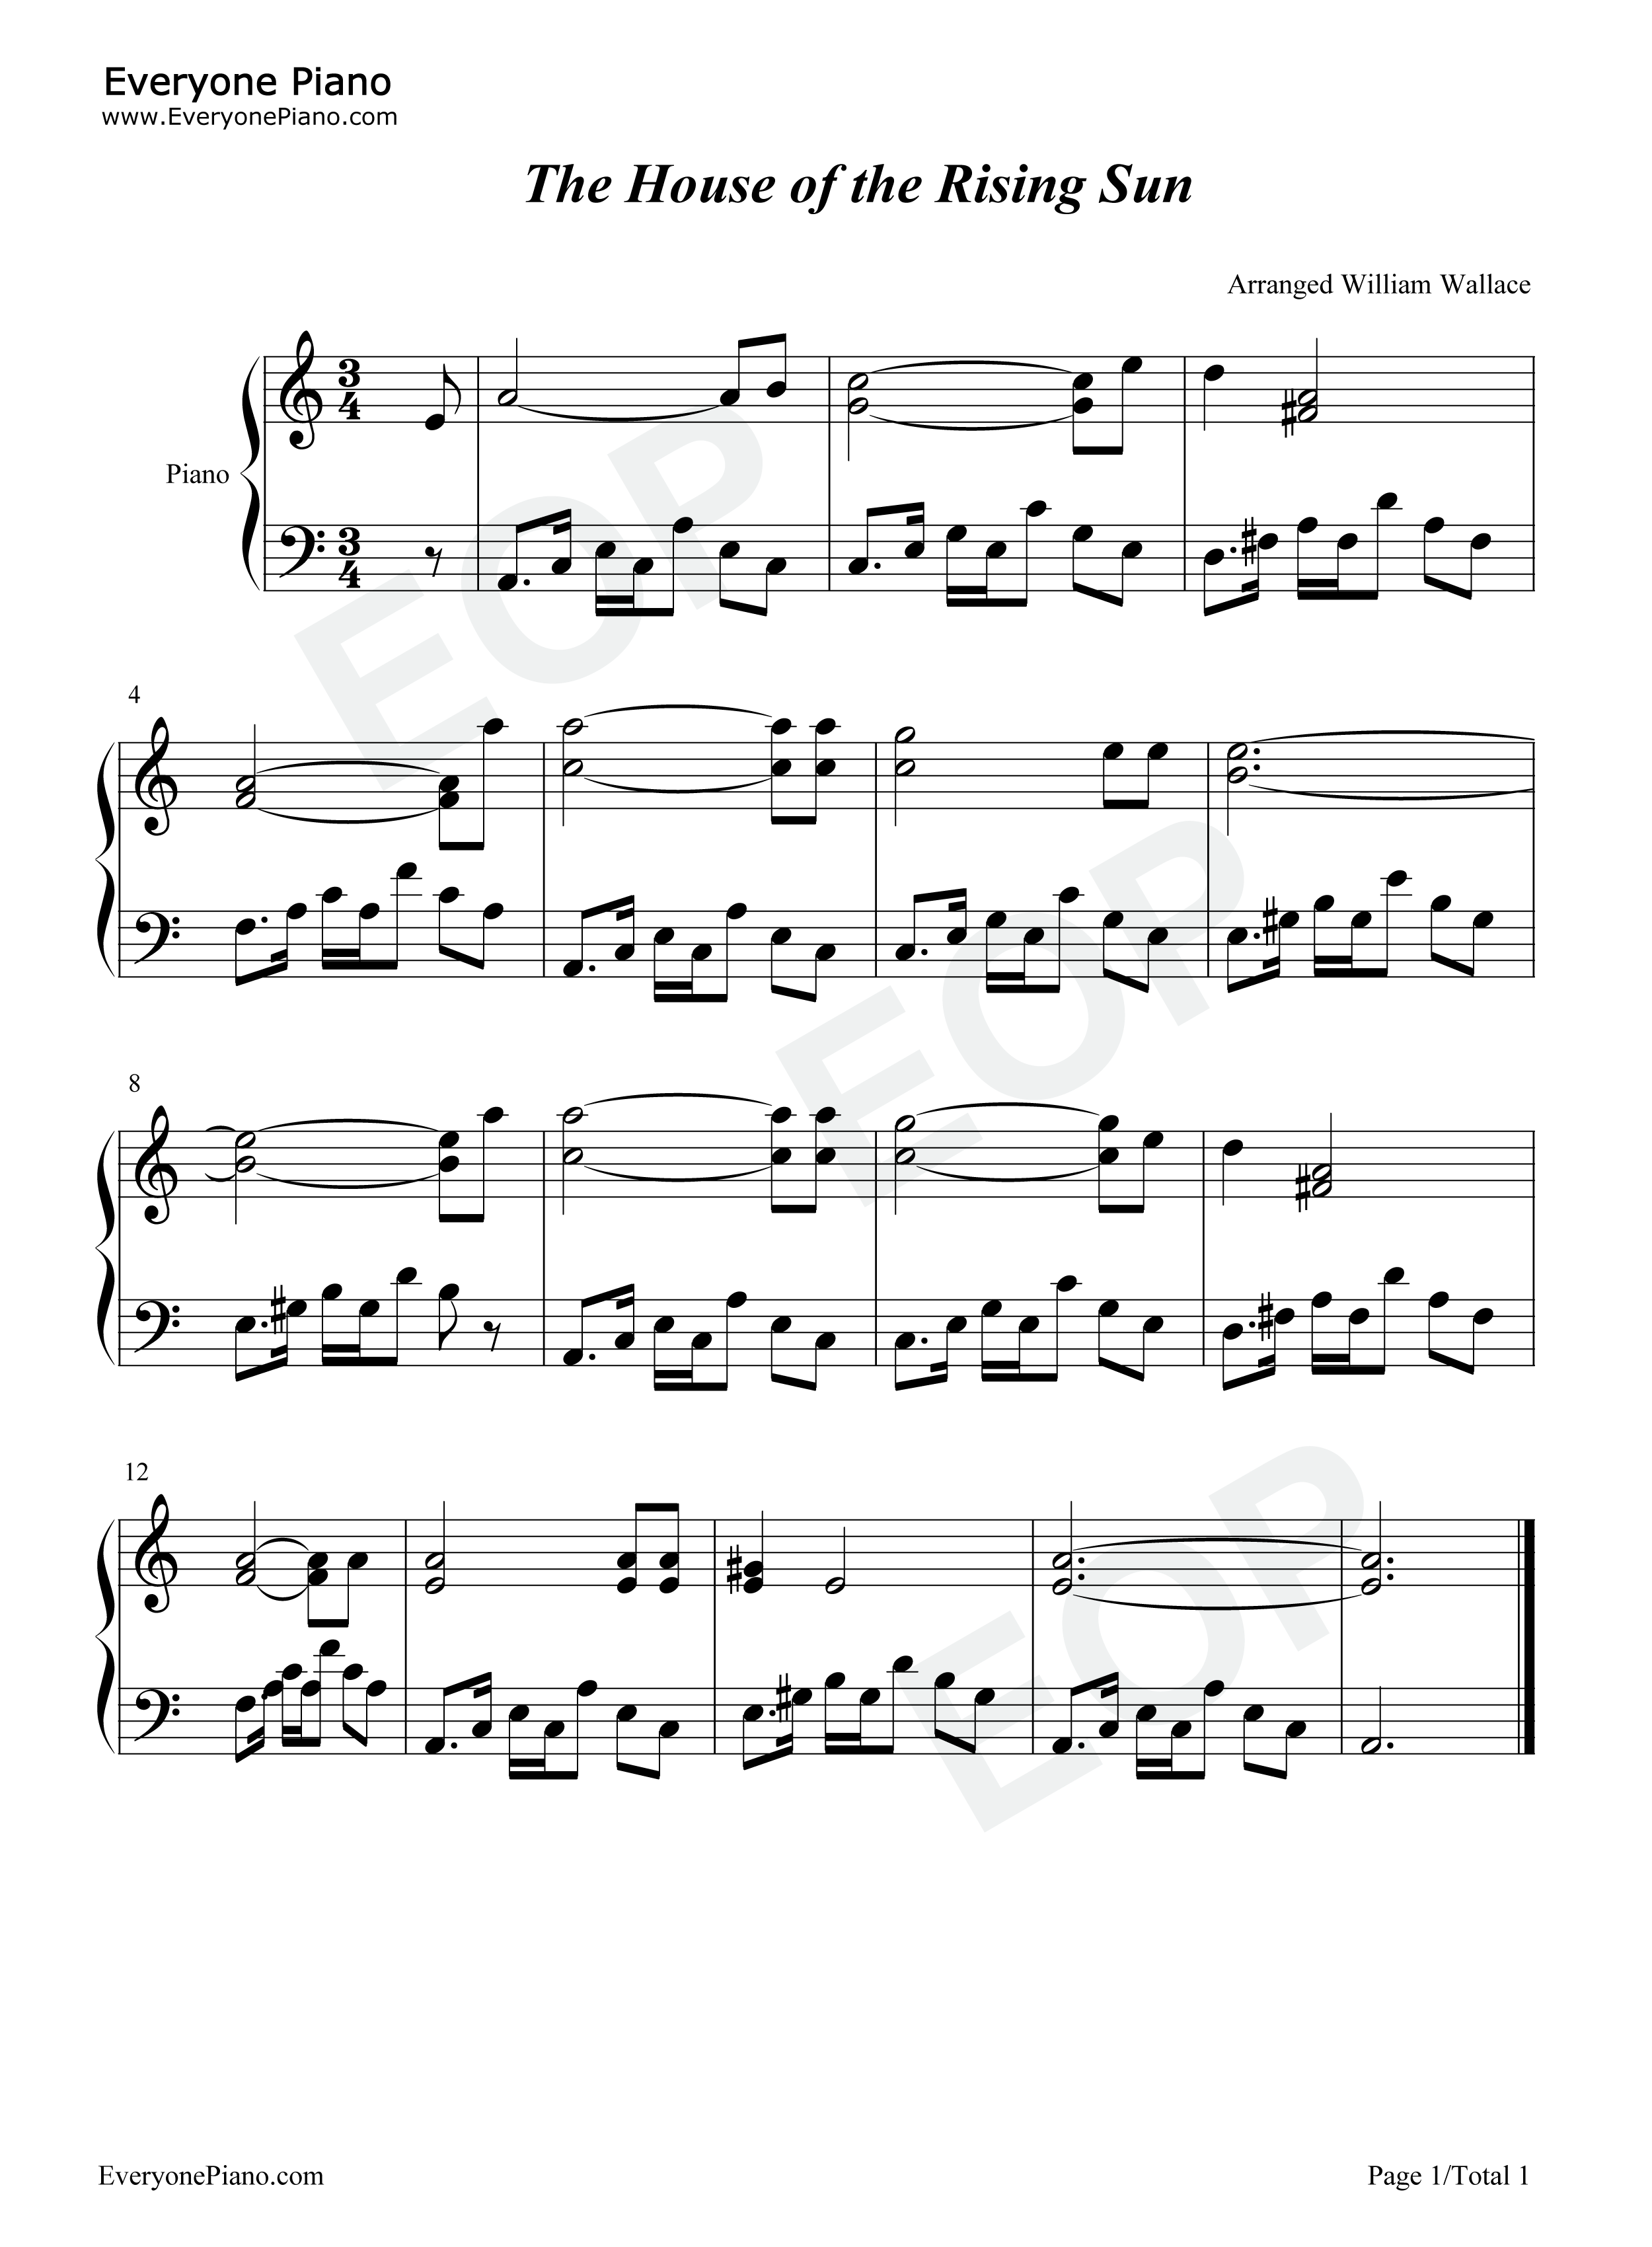 The House of the Rising Sun-The Animals Stave Preview 1-Free Piano Sheet Music u0026 Piano Chords